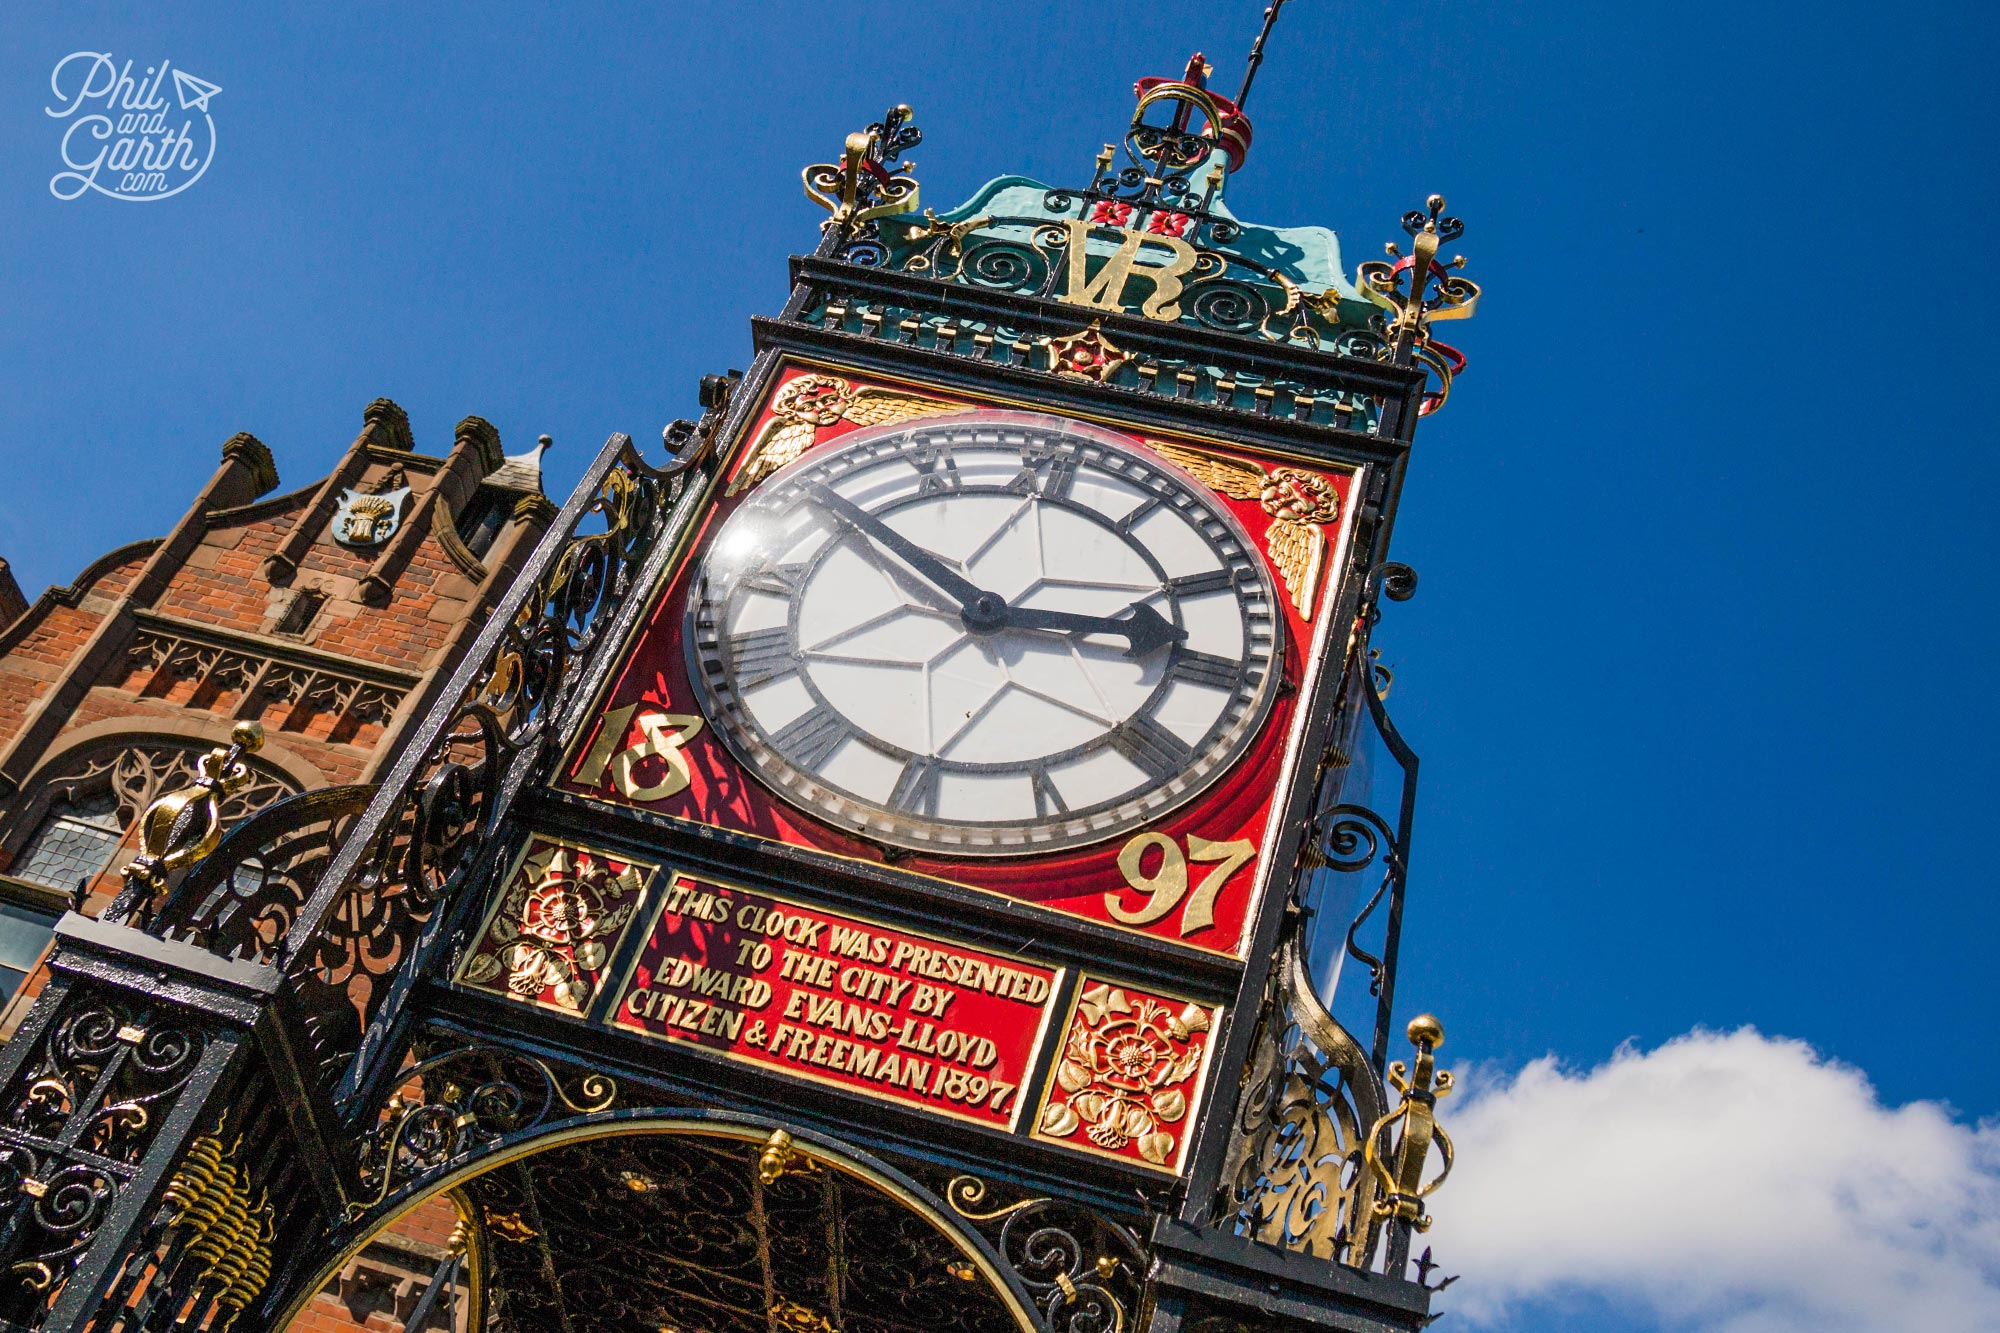 The ornate Eastgate Clock